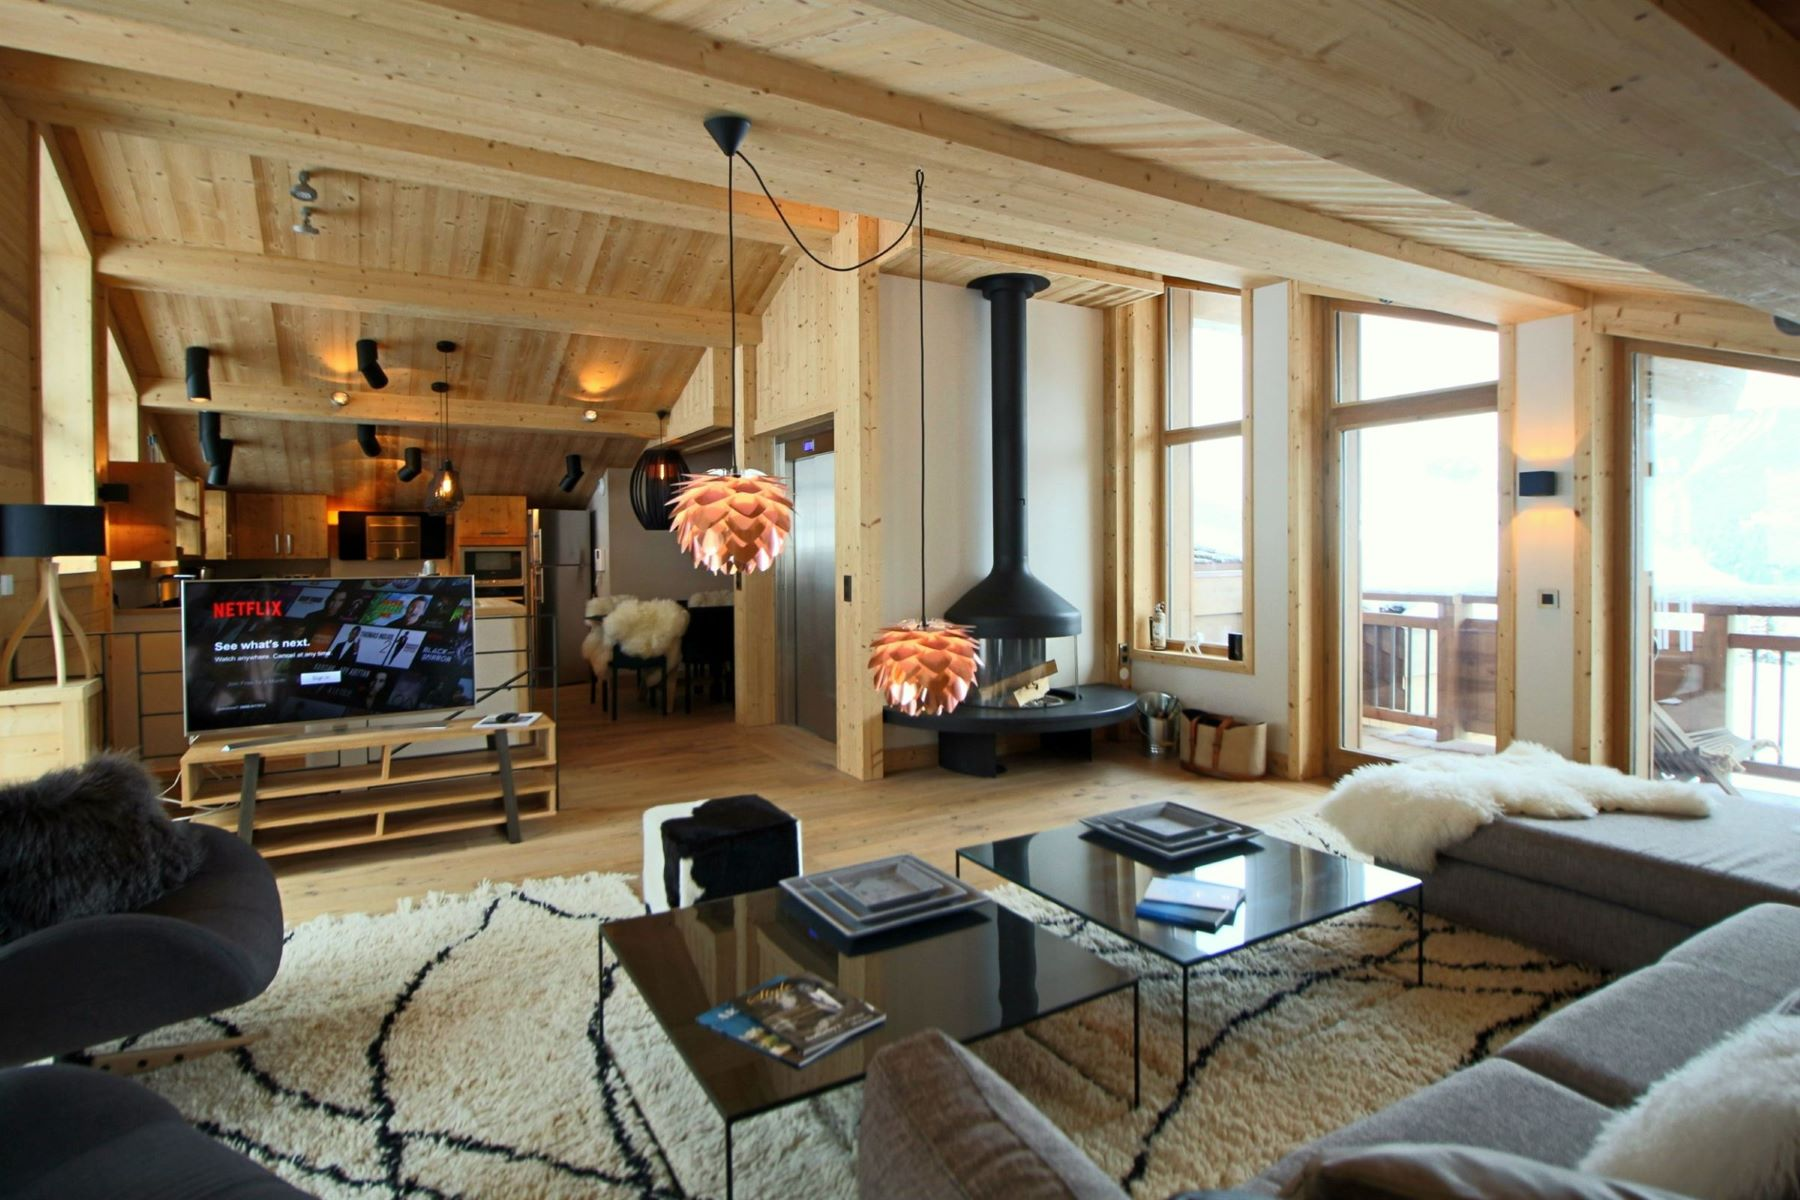 Single Family Home for Sale at Chalet Eiger Courchevel Village Courchevel, Rhone-Alpes, 73120 France